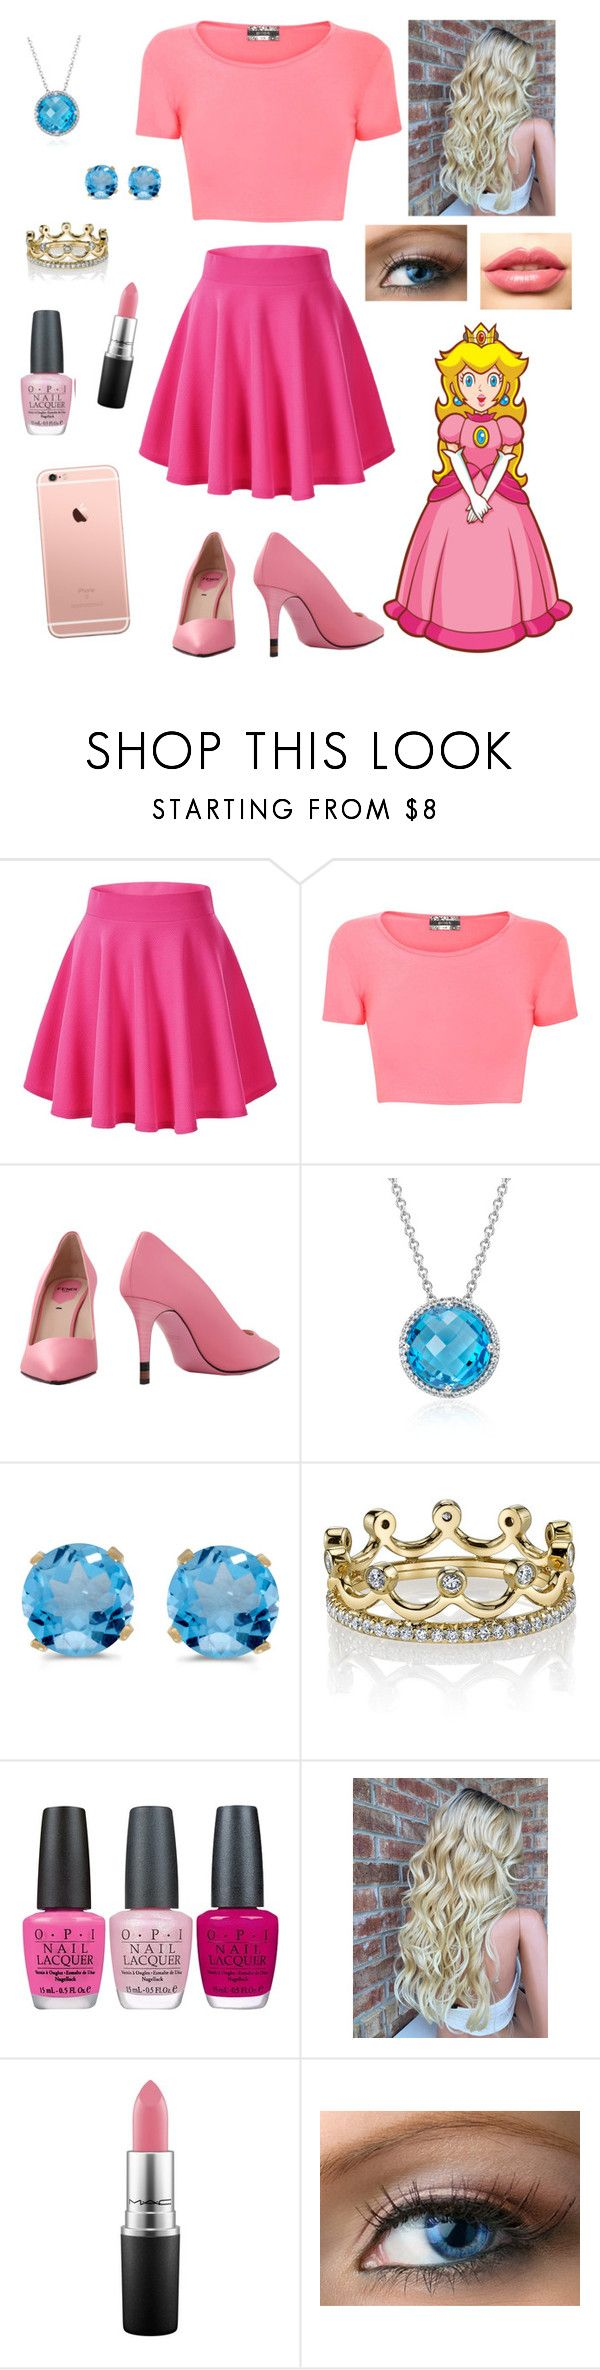 """Modern Princess Peach "" by dropsofautumnrain ❤ liked on Polyvore featuring…"